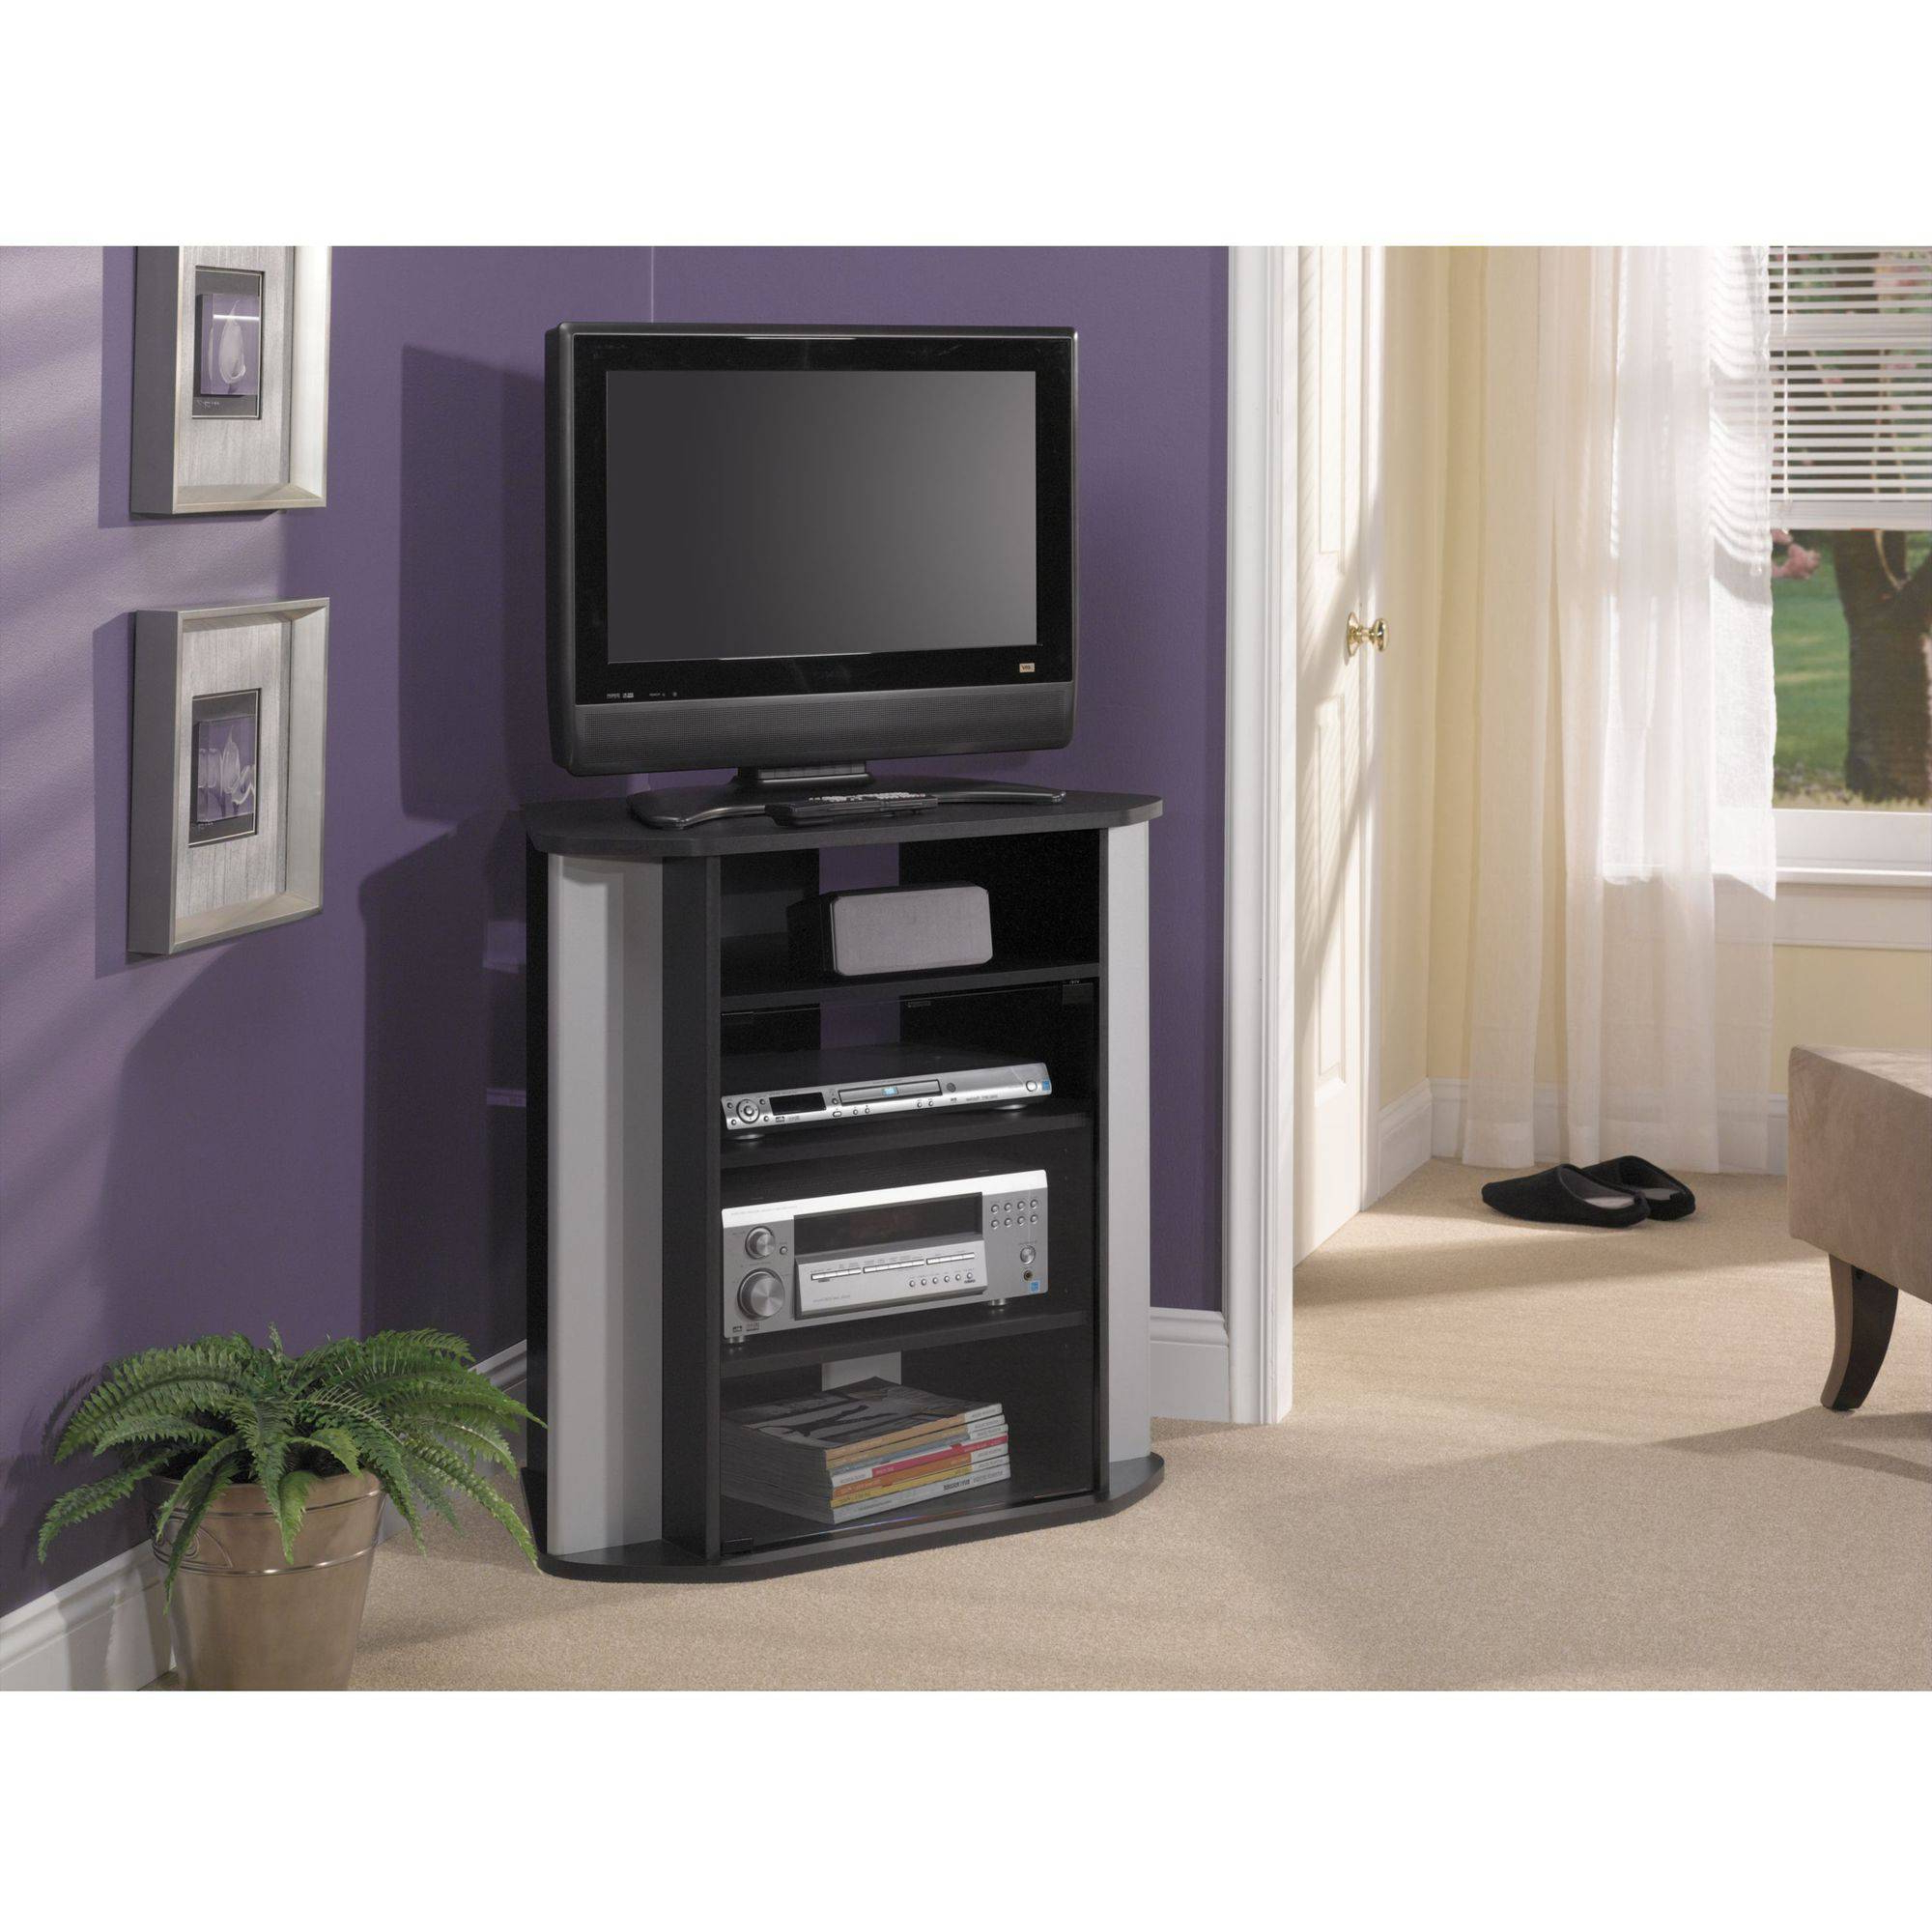 Corner Tv Cabinets With Glass Doors For Favorite Bush Furniture Visions Tall Corner Tv Stand In Black And Metallic (Gallery 14 of 20)